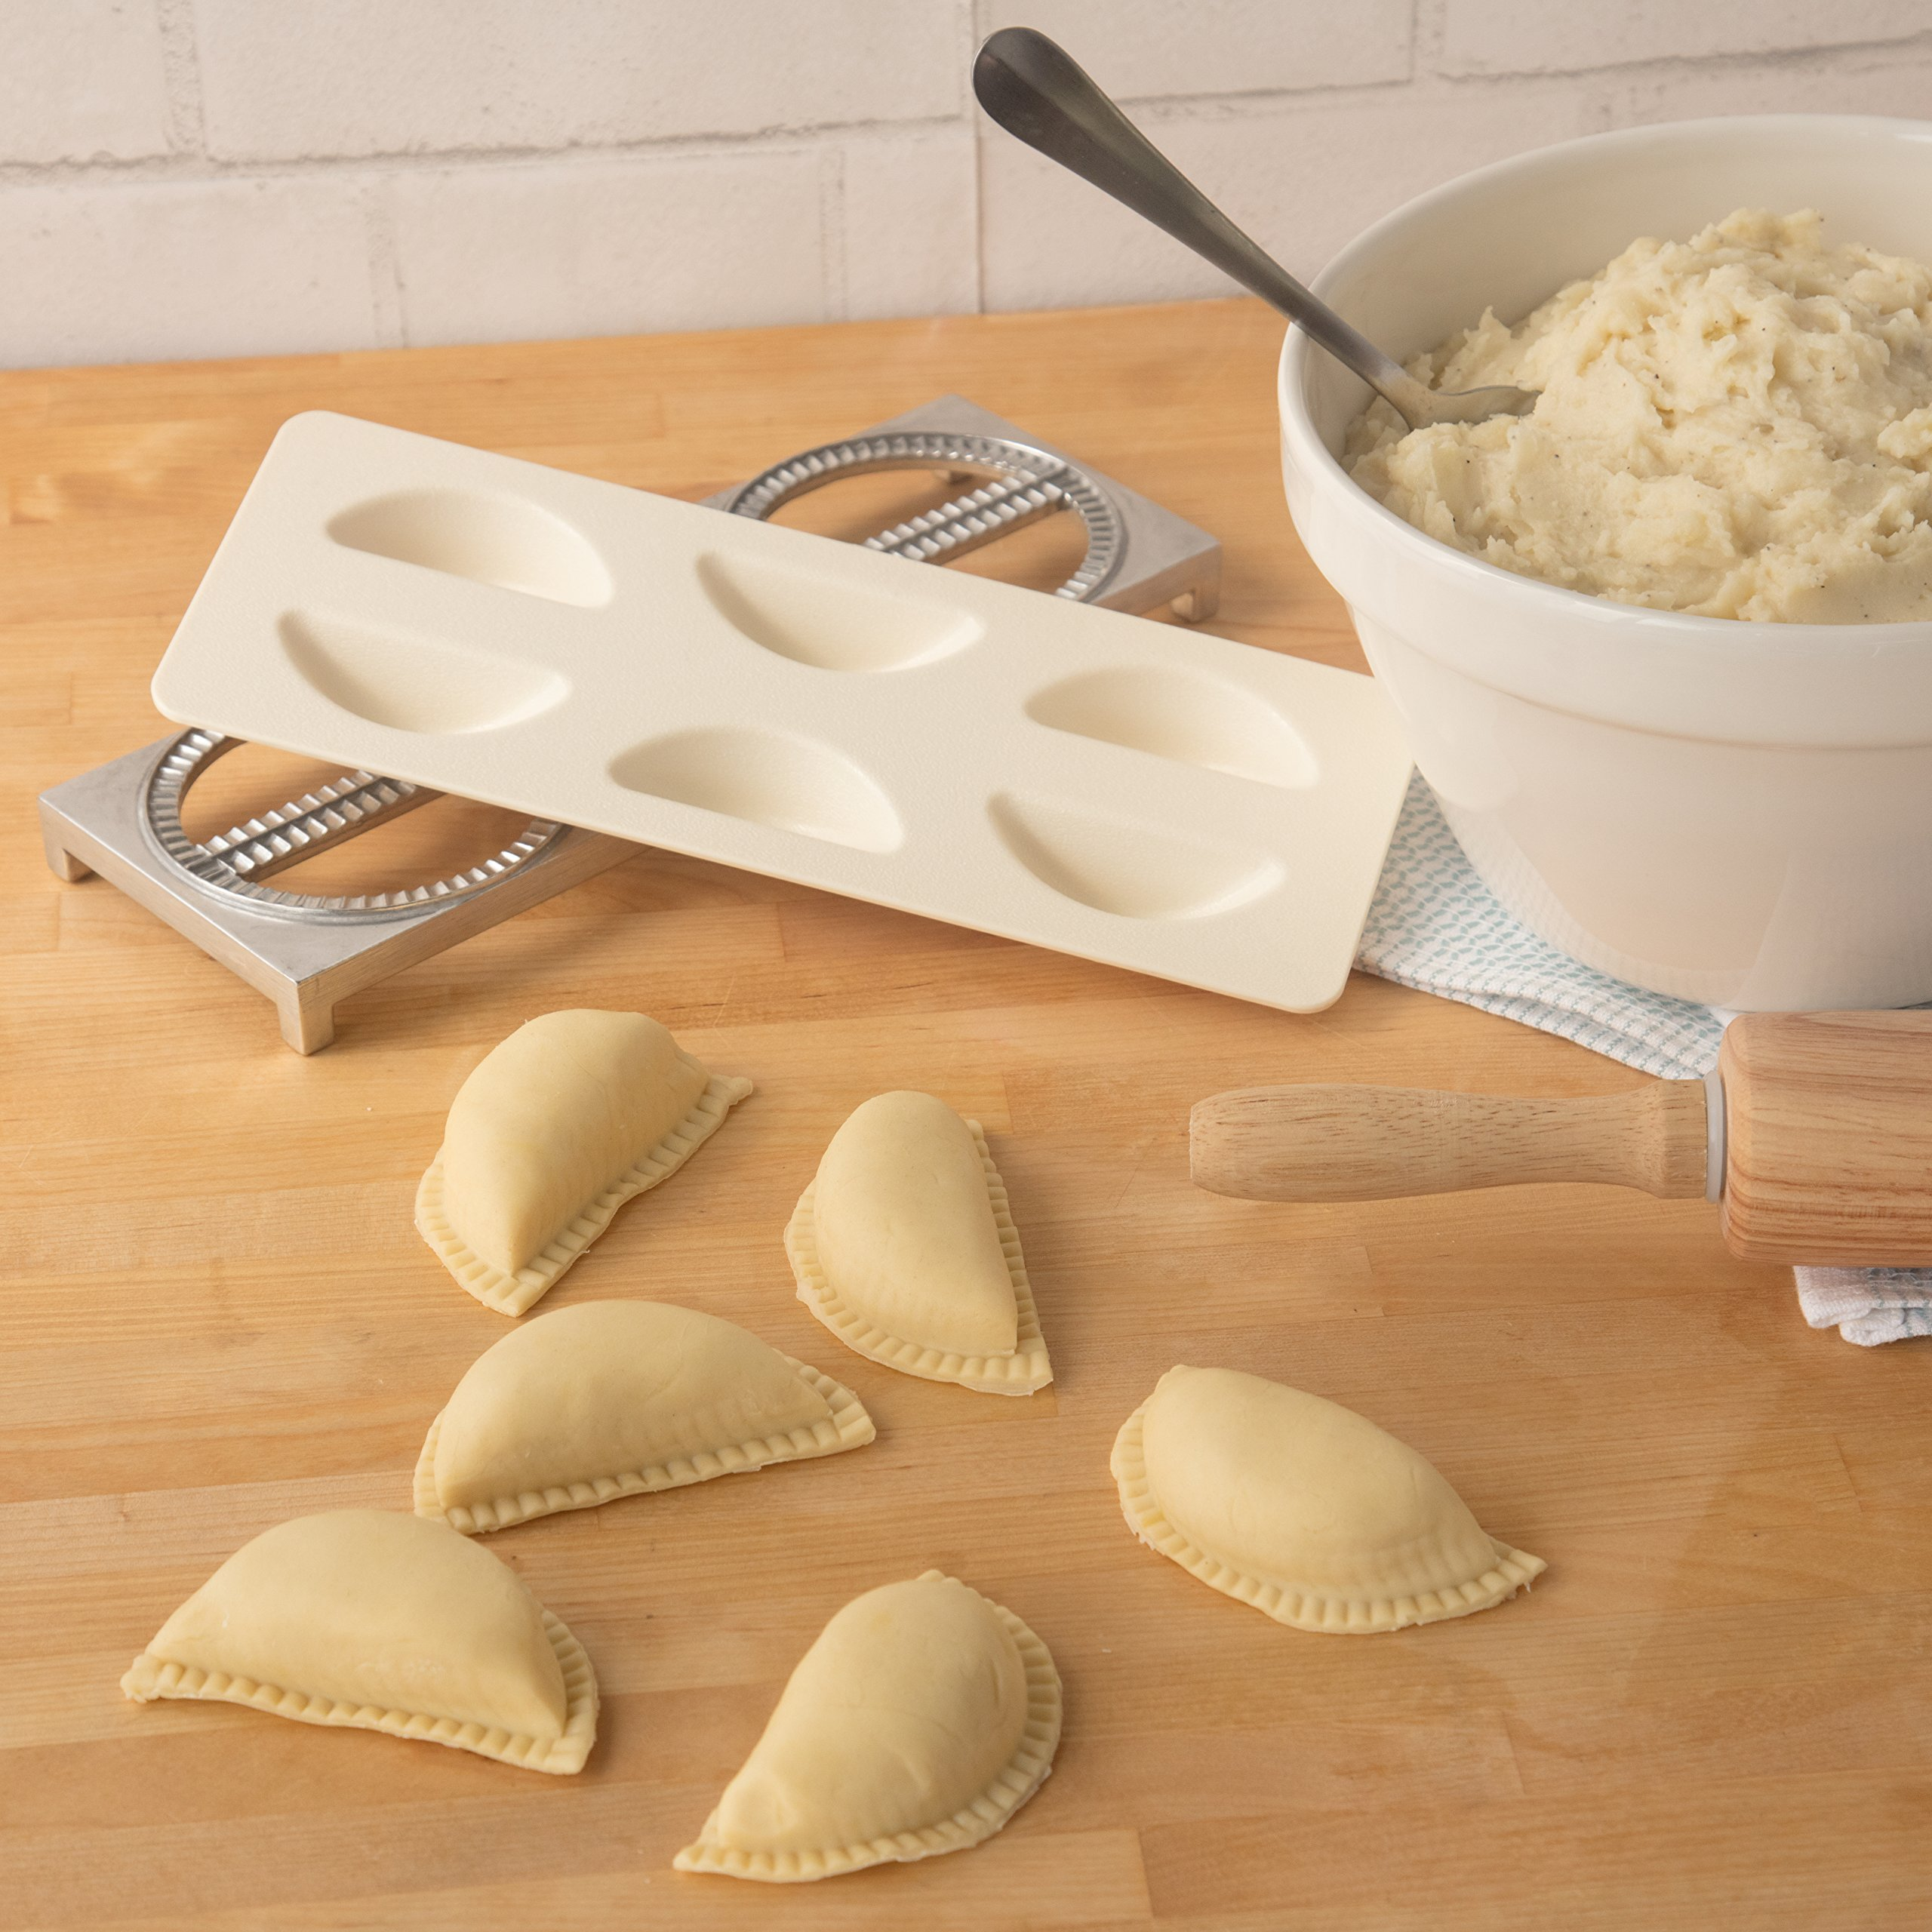 Pierogi Maker by Cucina Pro - Includes Tray and Press - Makes 6 Dumplings, Potstickers, or Peirogis at  a time by CucinaPro (Image #7)